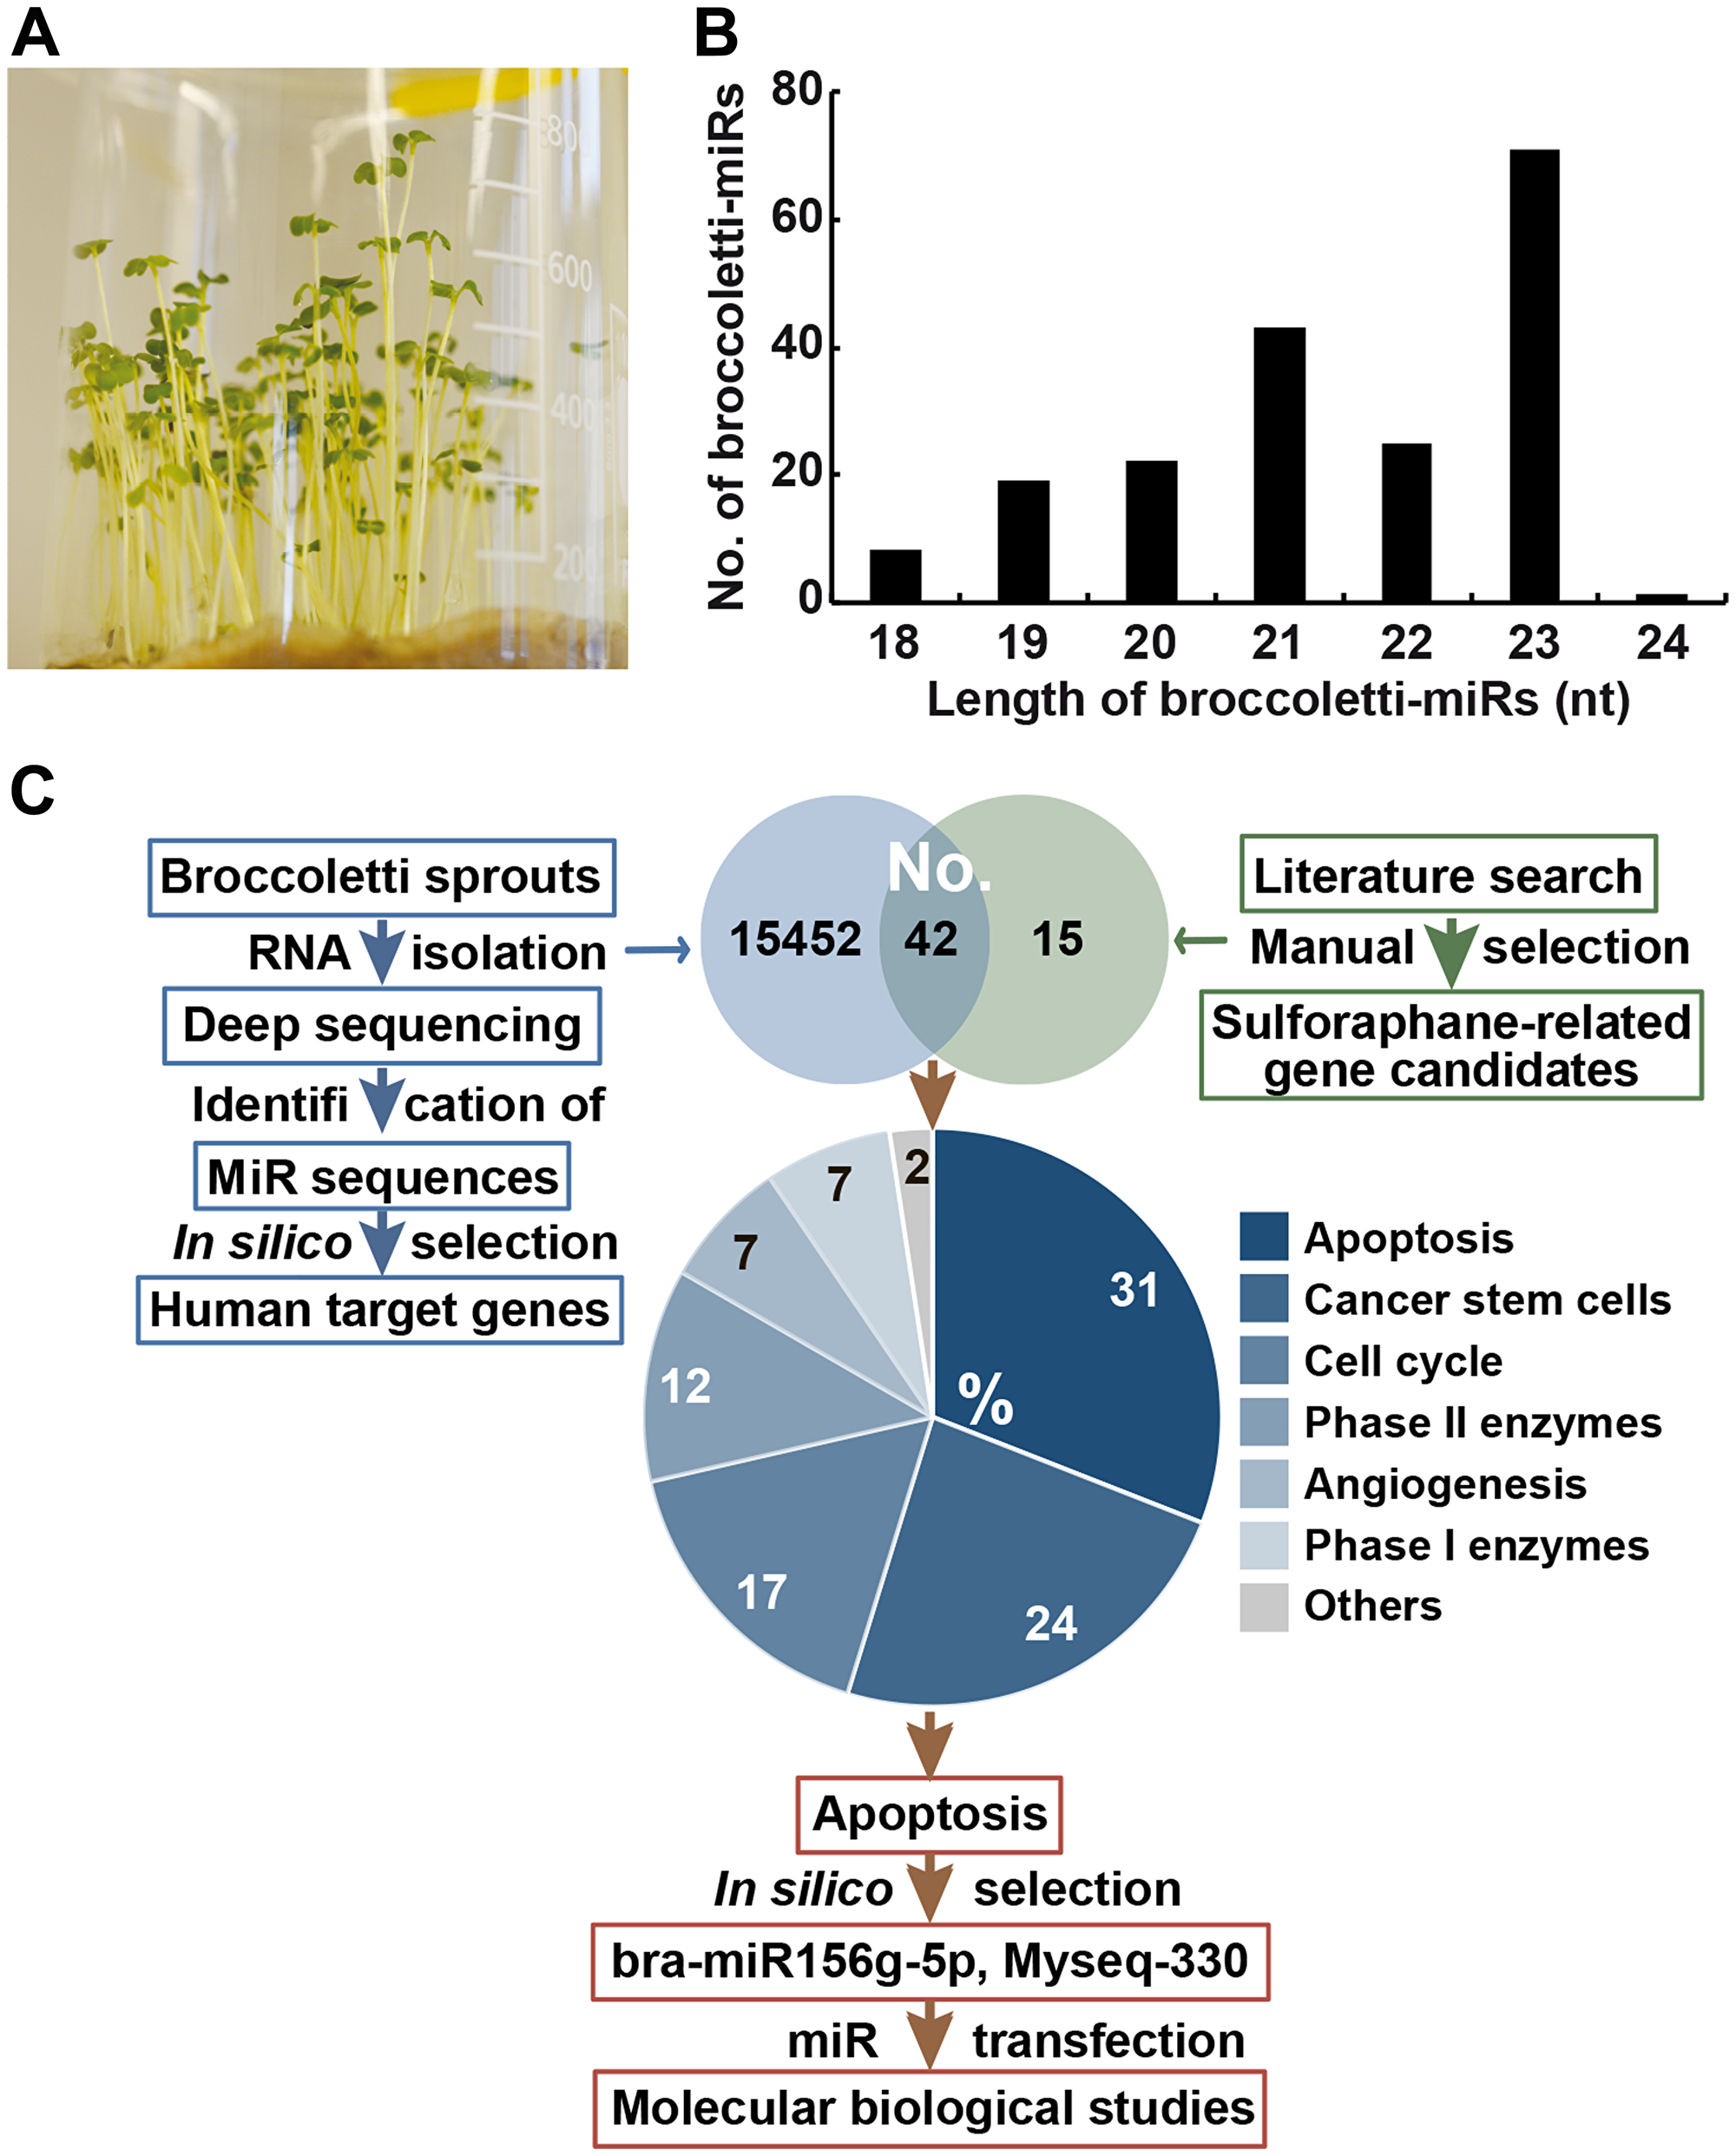 Identification of 747 miR sequences in broccoletti sprouts.